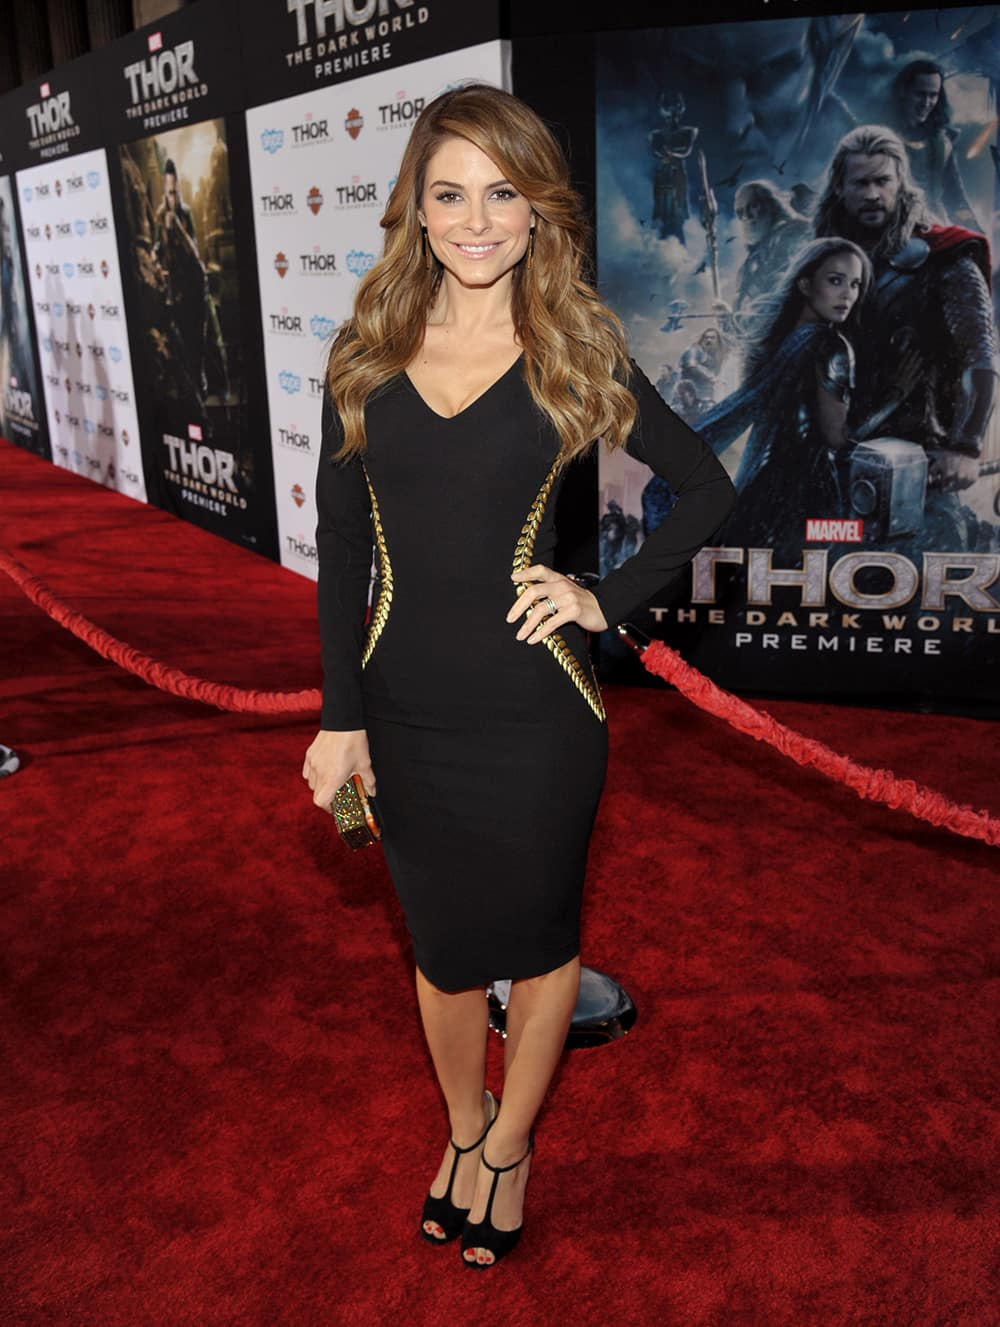 Maria Menounos arrives at the U.S. premiere of